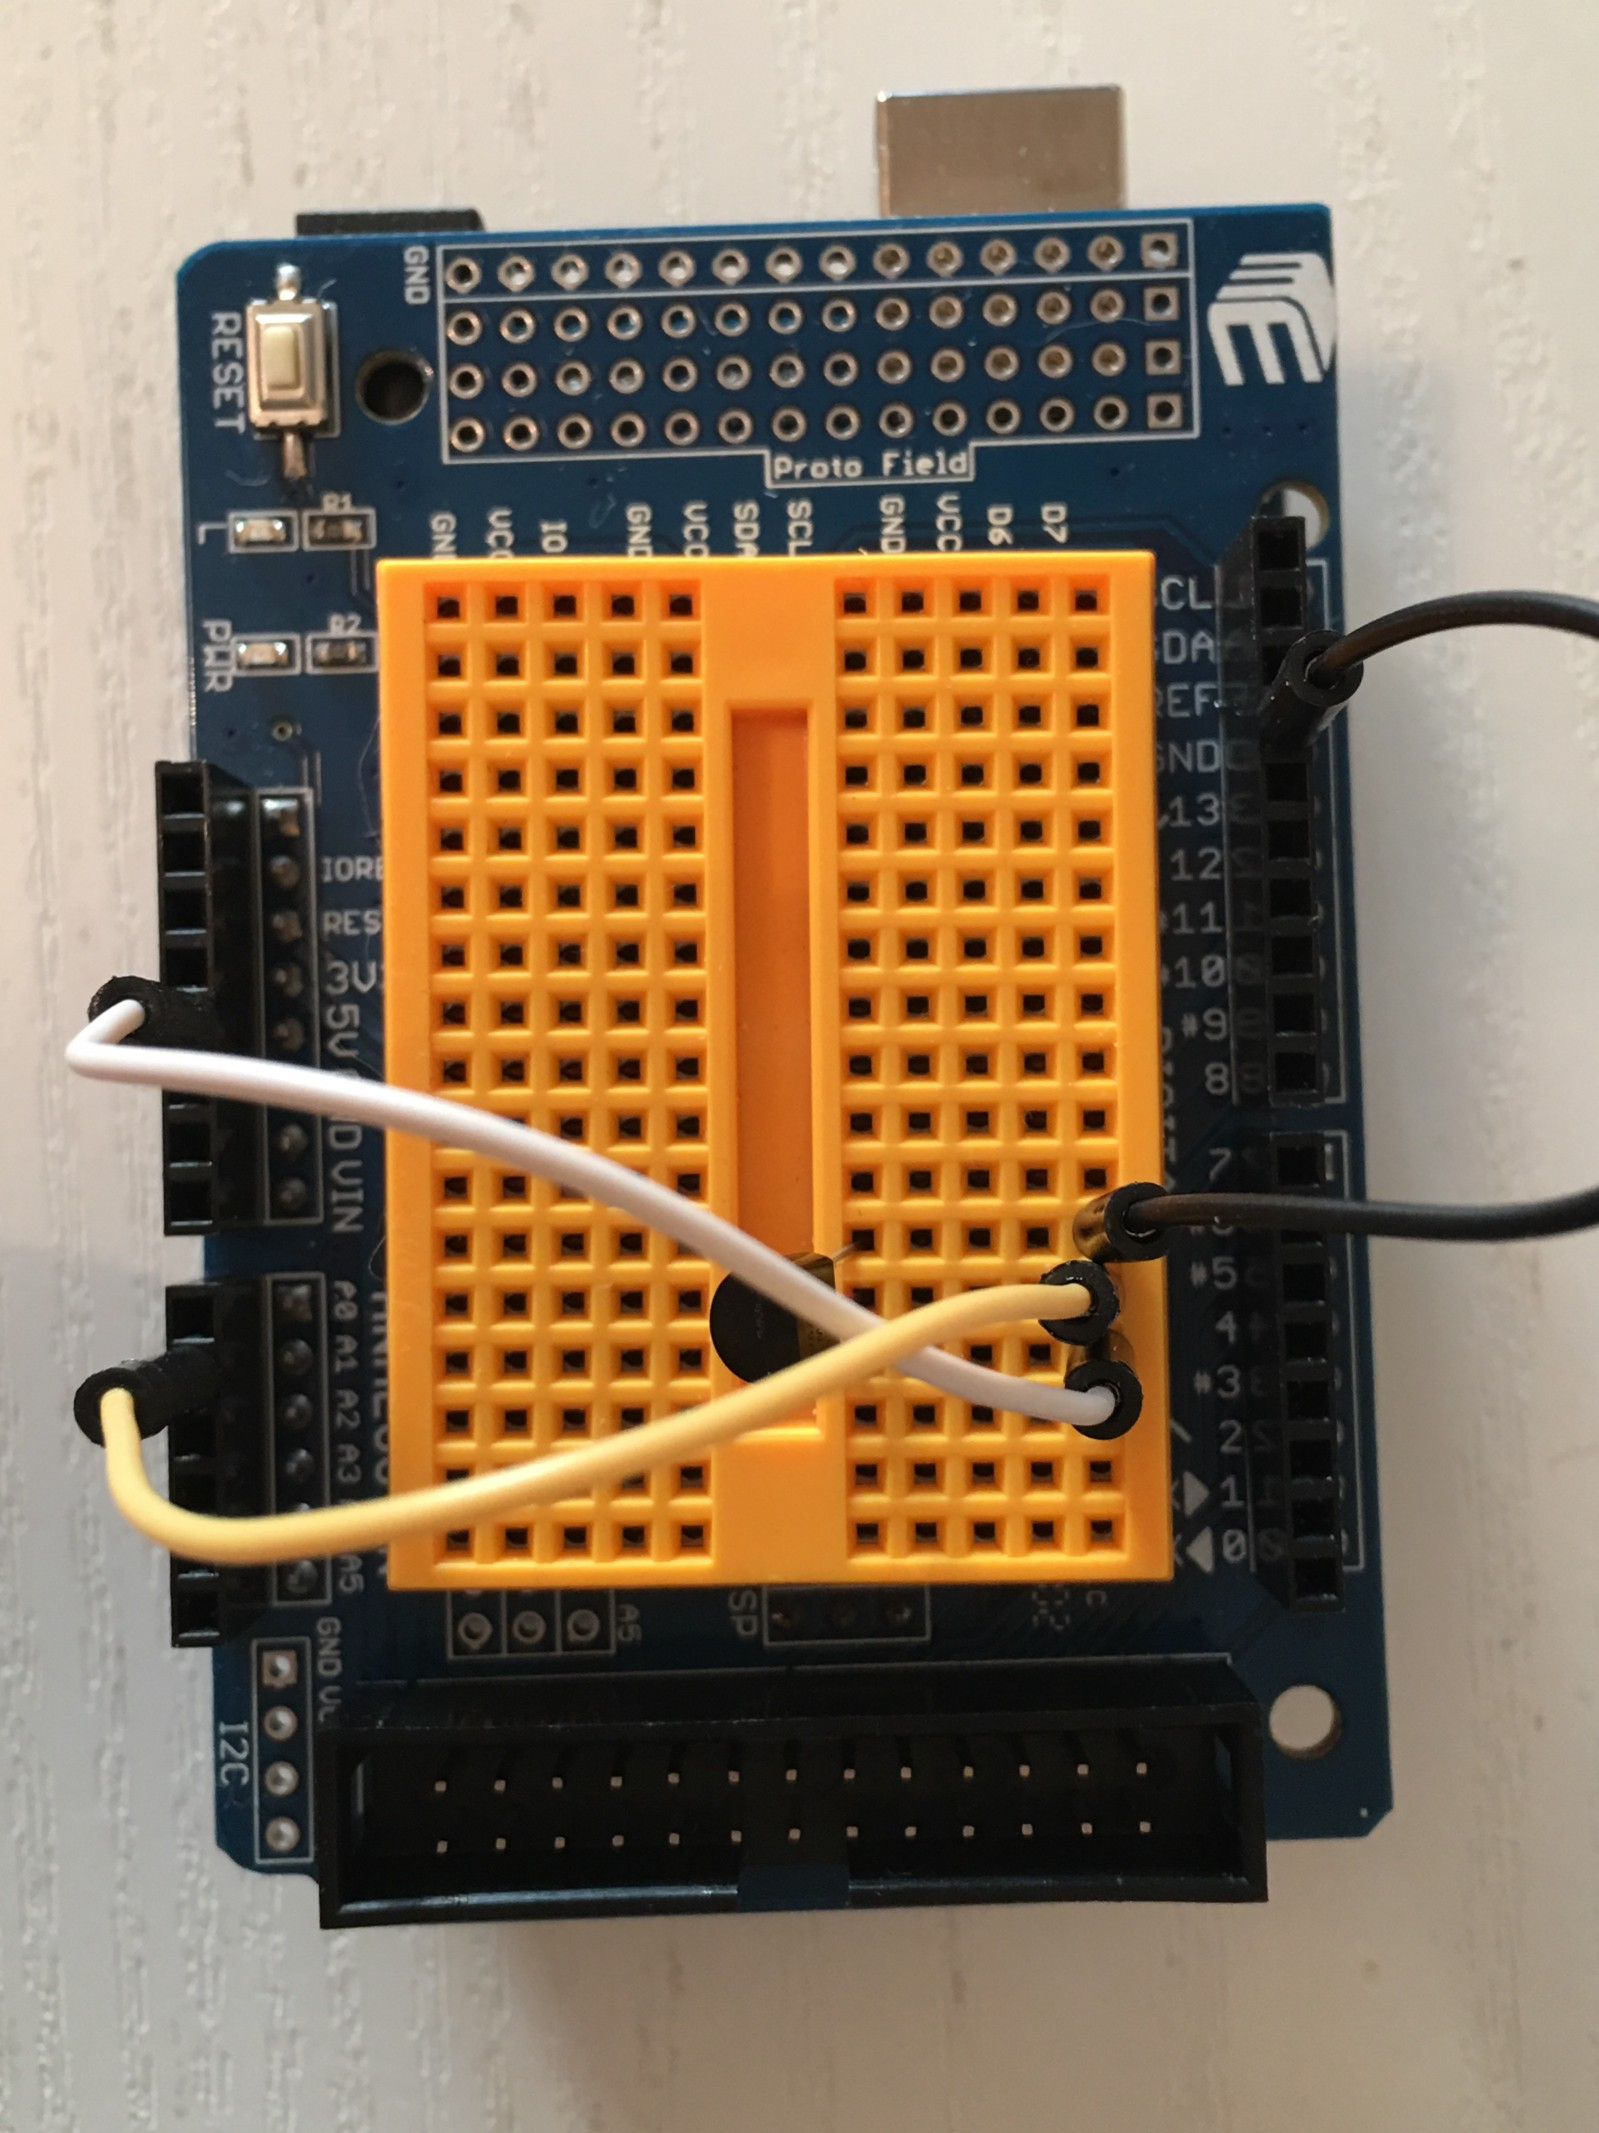 Learning Electronics With Home Automation The Thermometer Pic Microcontroller Primer Tutorial 1 All Done